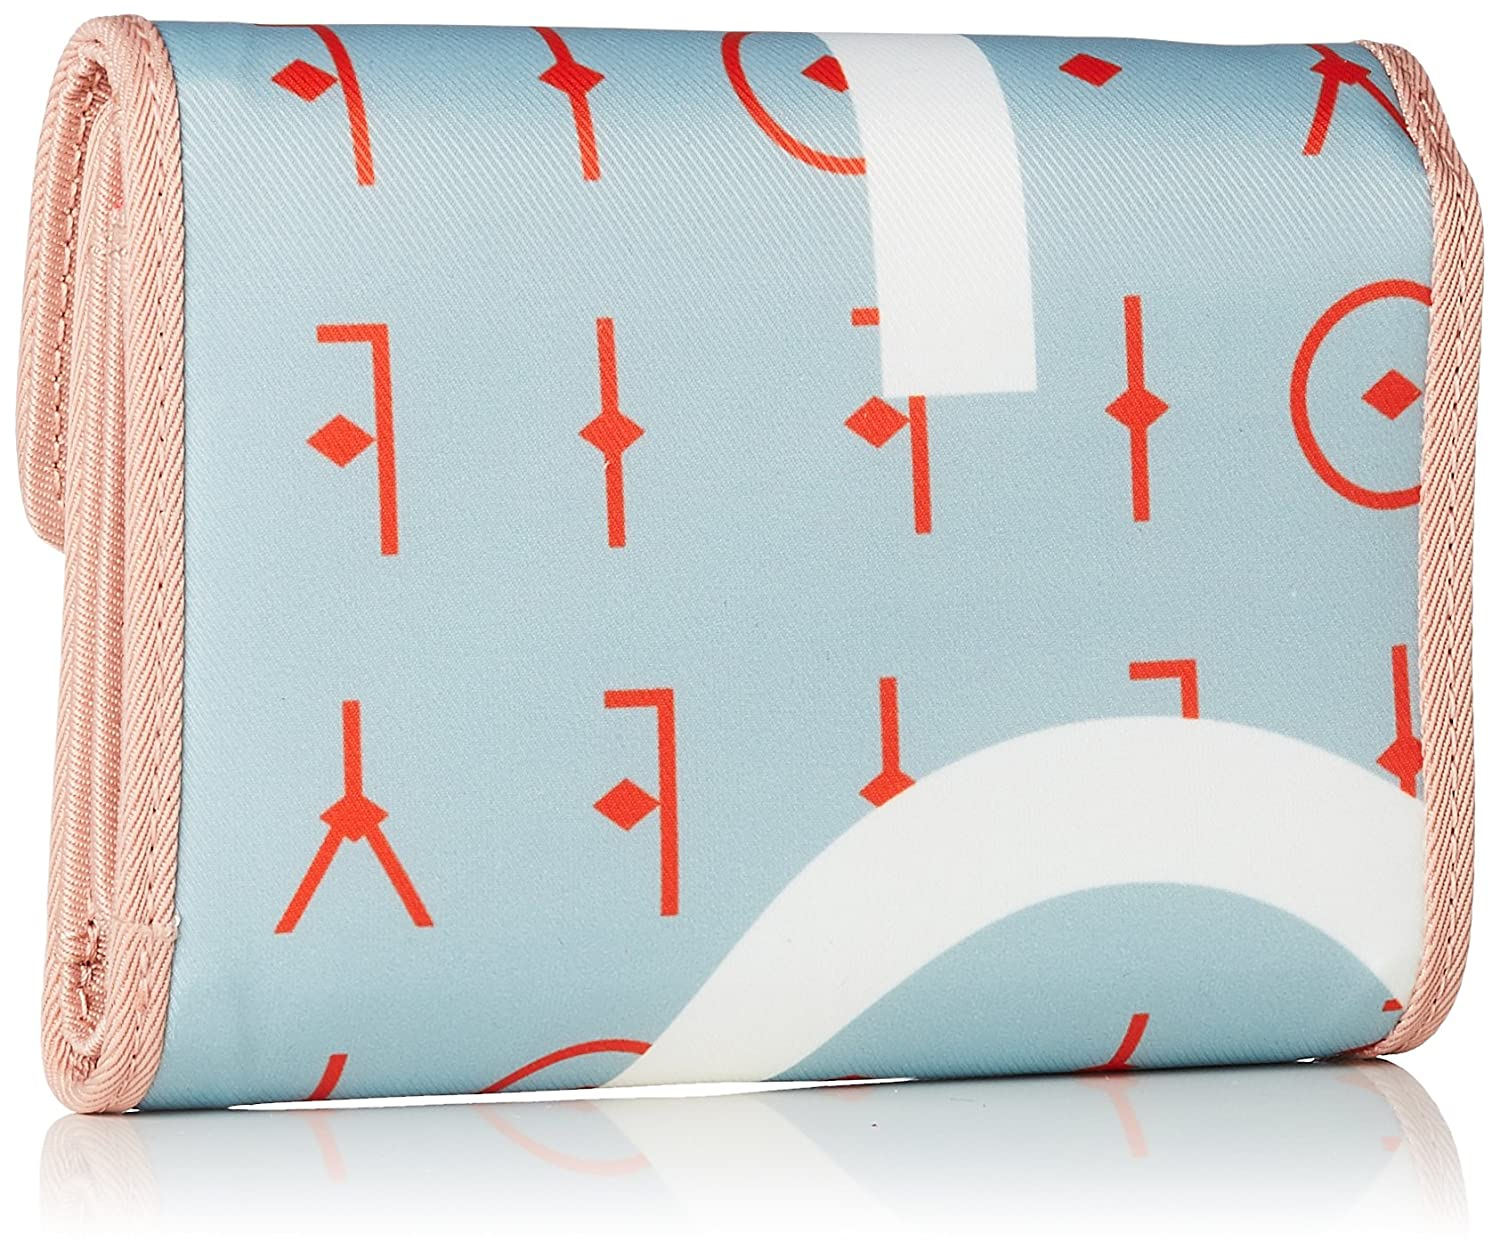 Groovy Letters Purse Mh10f, Womens Wallet, Blue (Light Blue), 1x10x14 cm (B x H T) Oilily